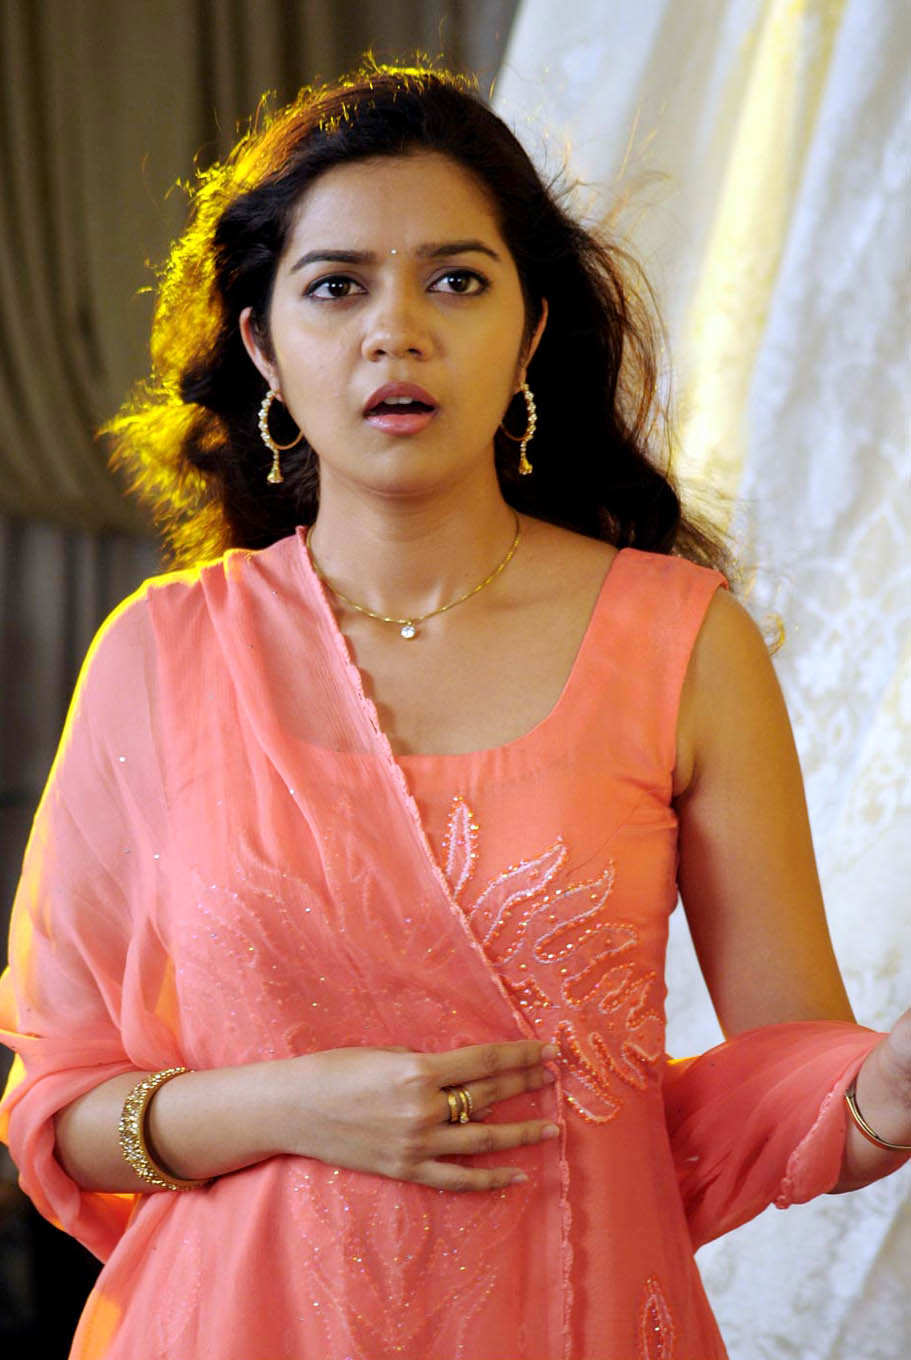 Swathi stills : Tamil actress